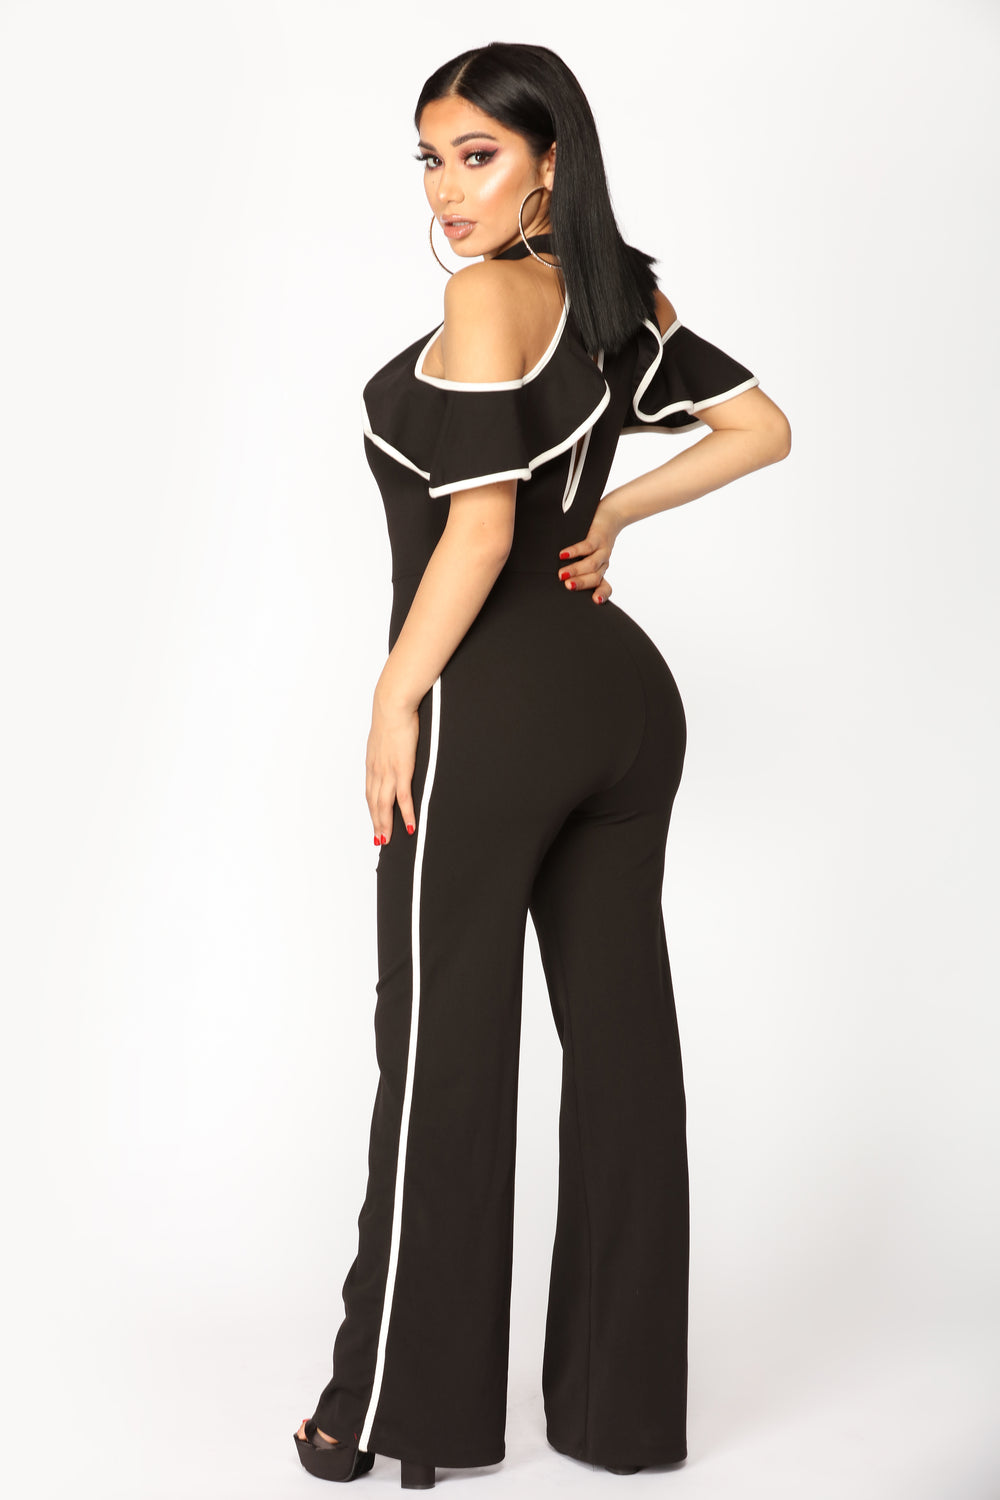 Ruffle Bell Jumpsuit - Black/Off White